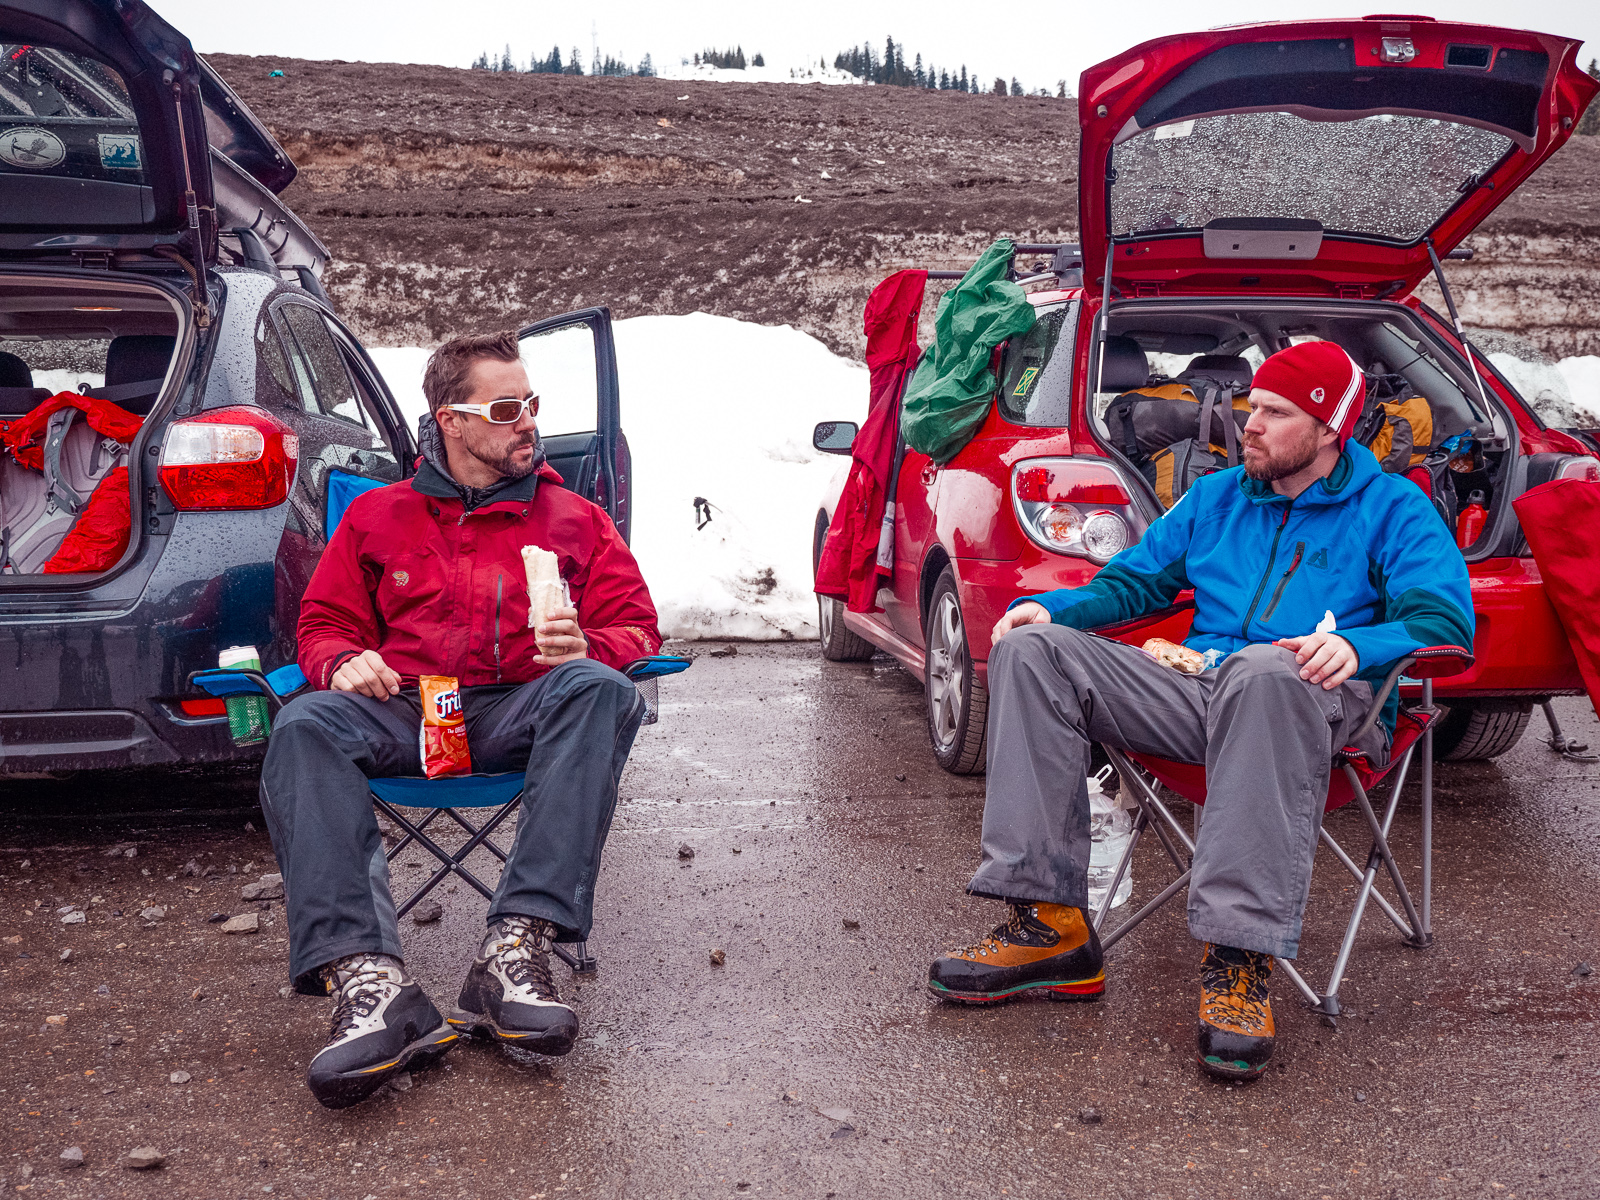 Leaders Matt Palubinskas and Adam Hollinger roughing it in the parking lot at Snoqualmie Pass, WA.